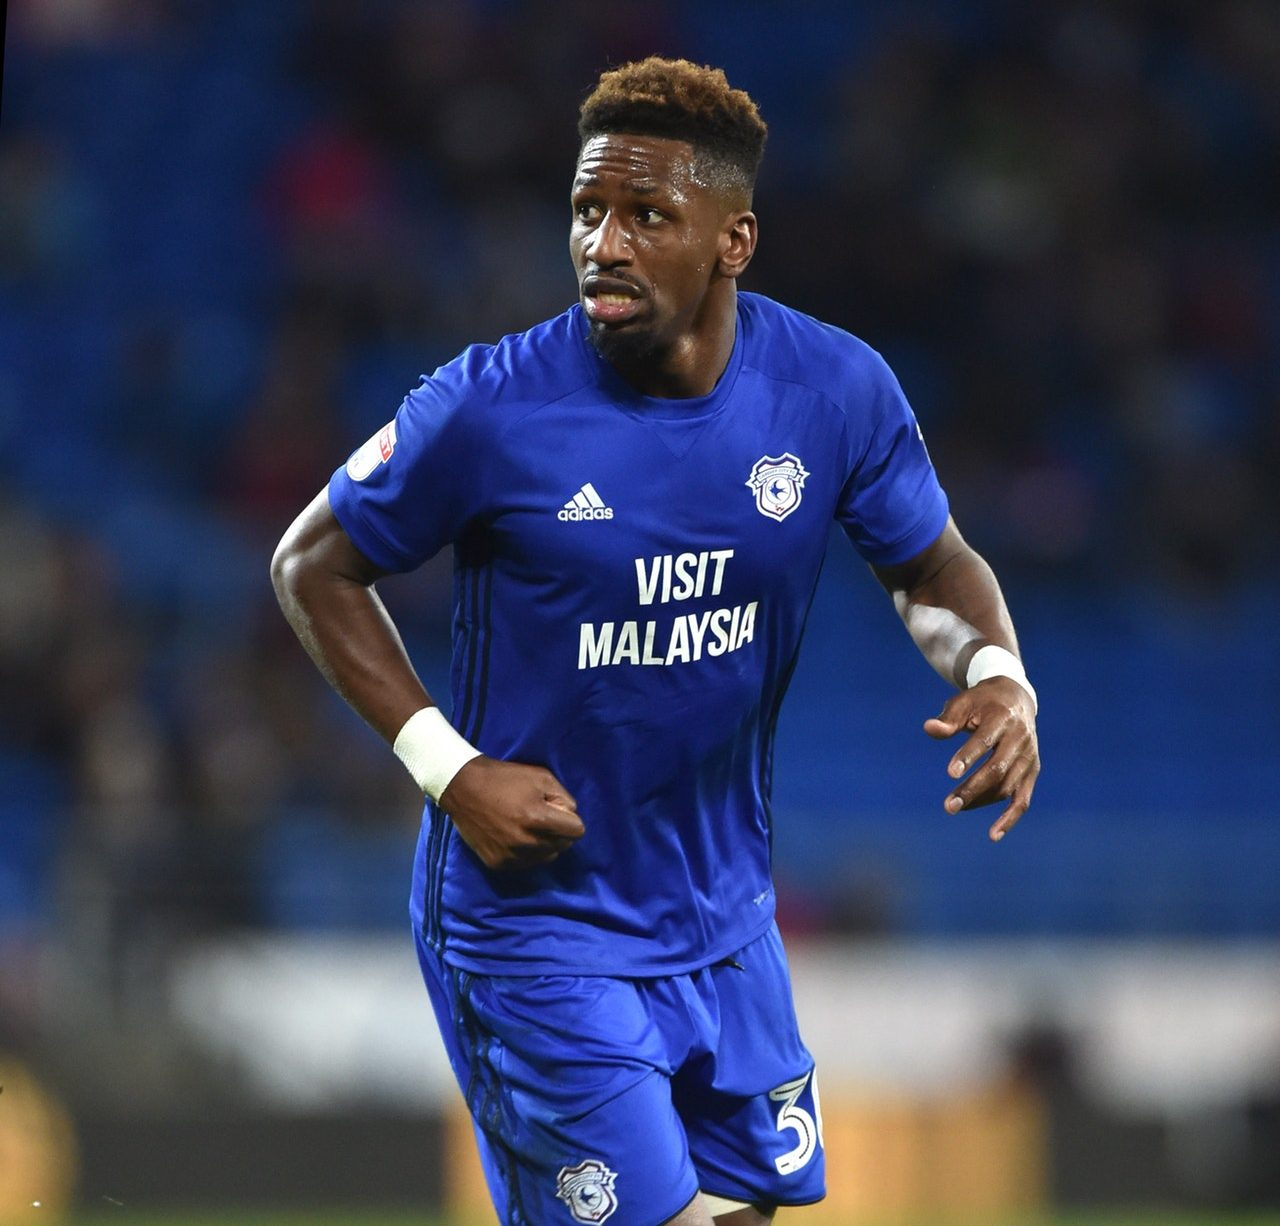 Cardiff Man To Stay At Pompey